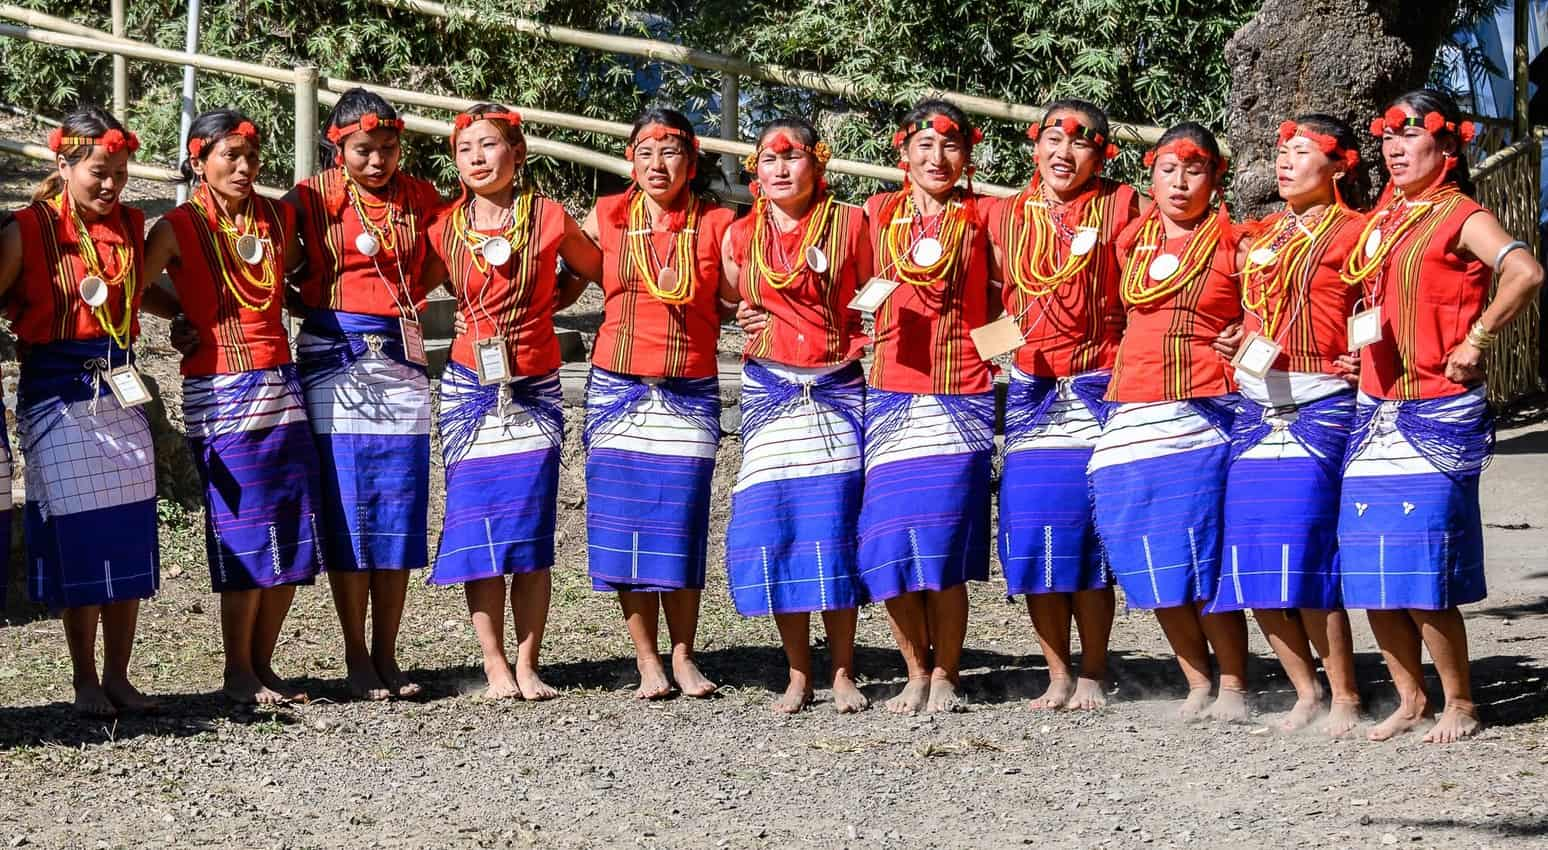 Tribal women dancing barefoot lock arms as they move in a counterclockwise circle during a demonstration at the Hornbill Festival in Nagaland, India. Donnie Sexton photos.